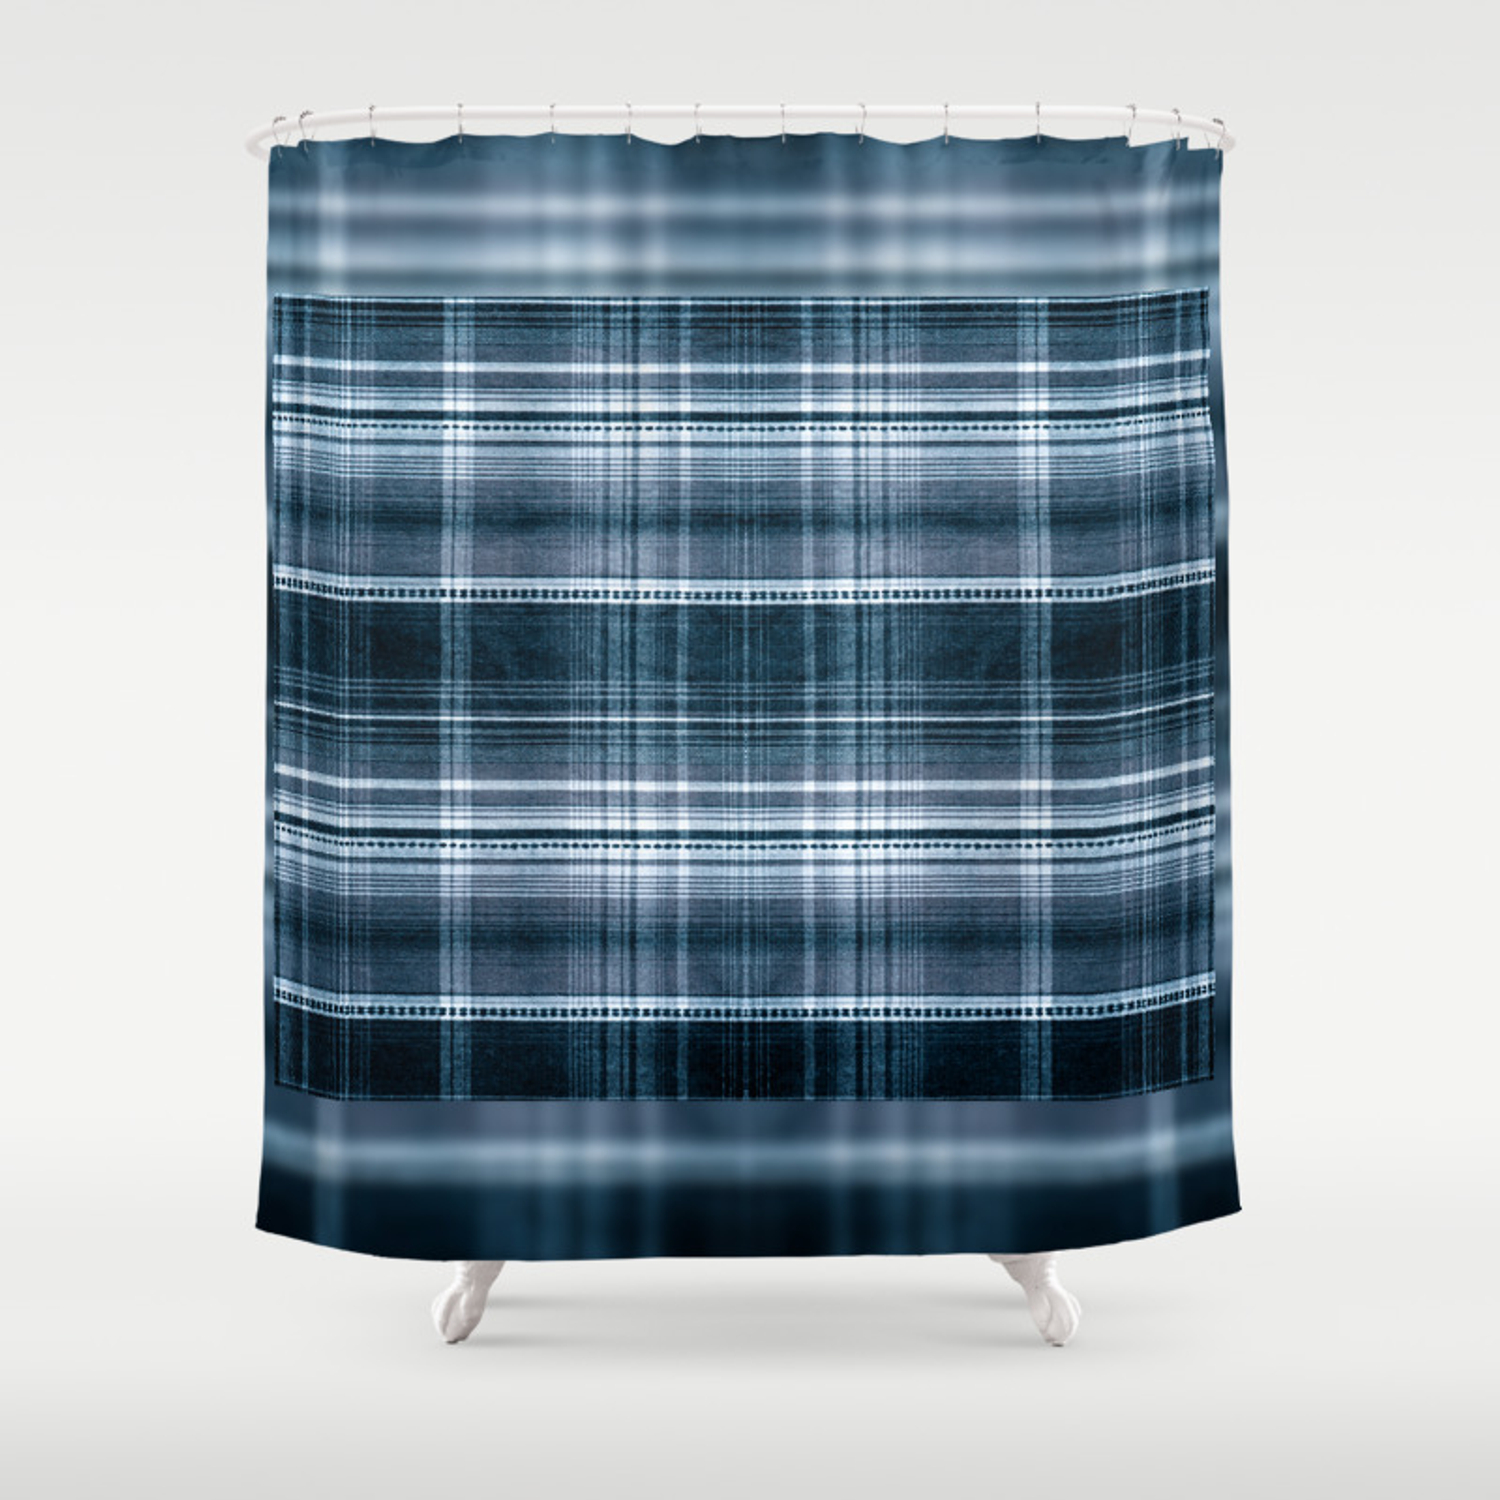 Navy Blue Checked Cotton Cloth Shower Curtain